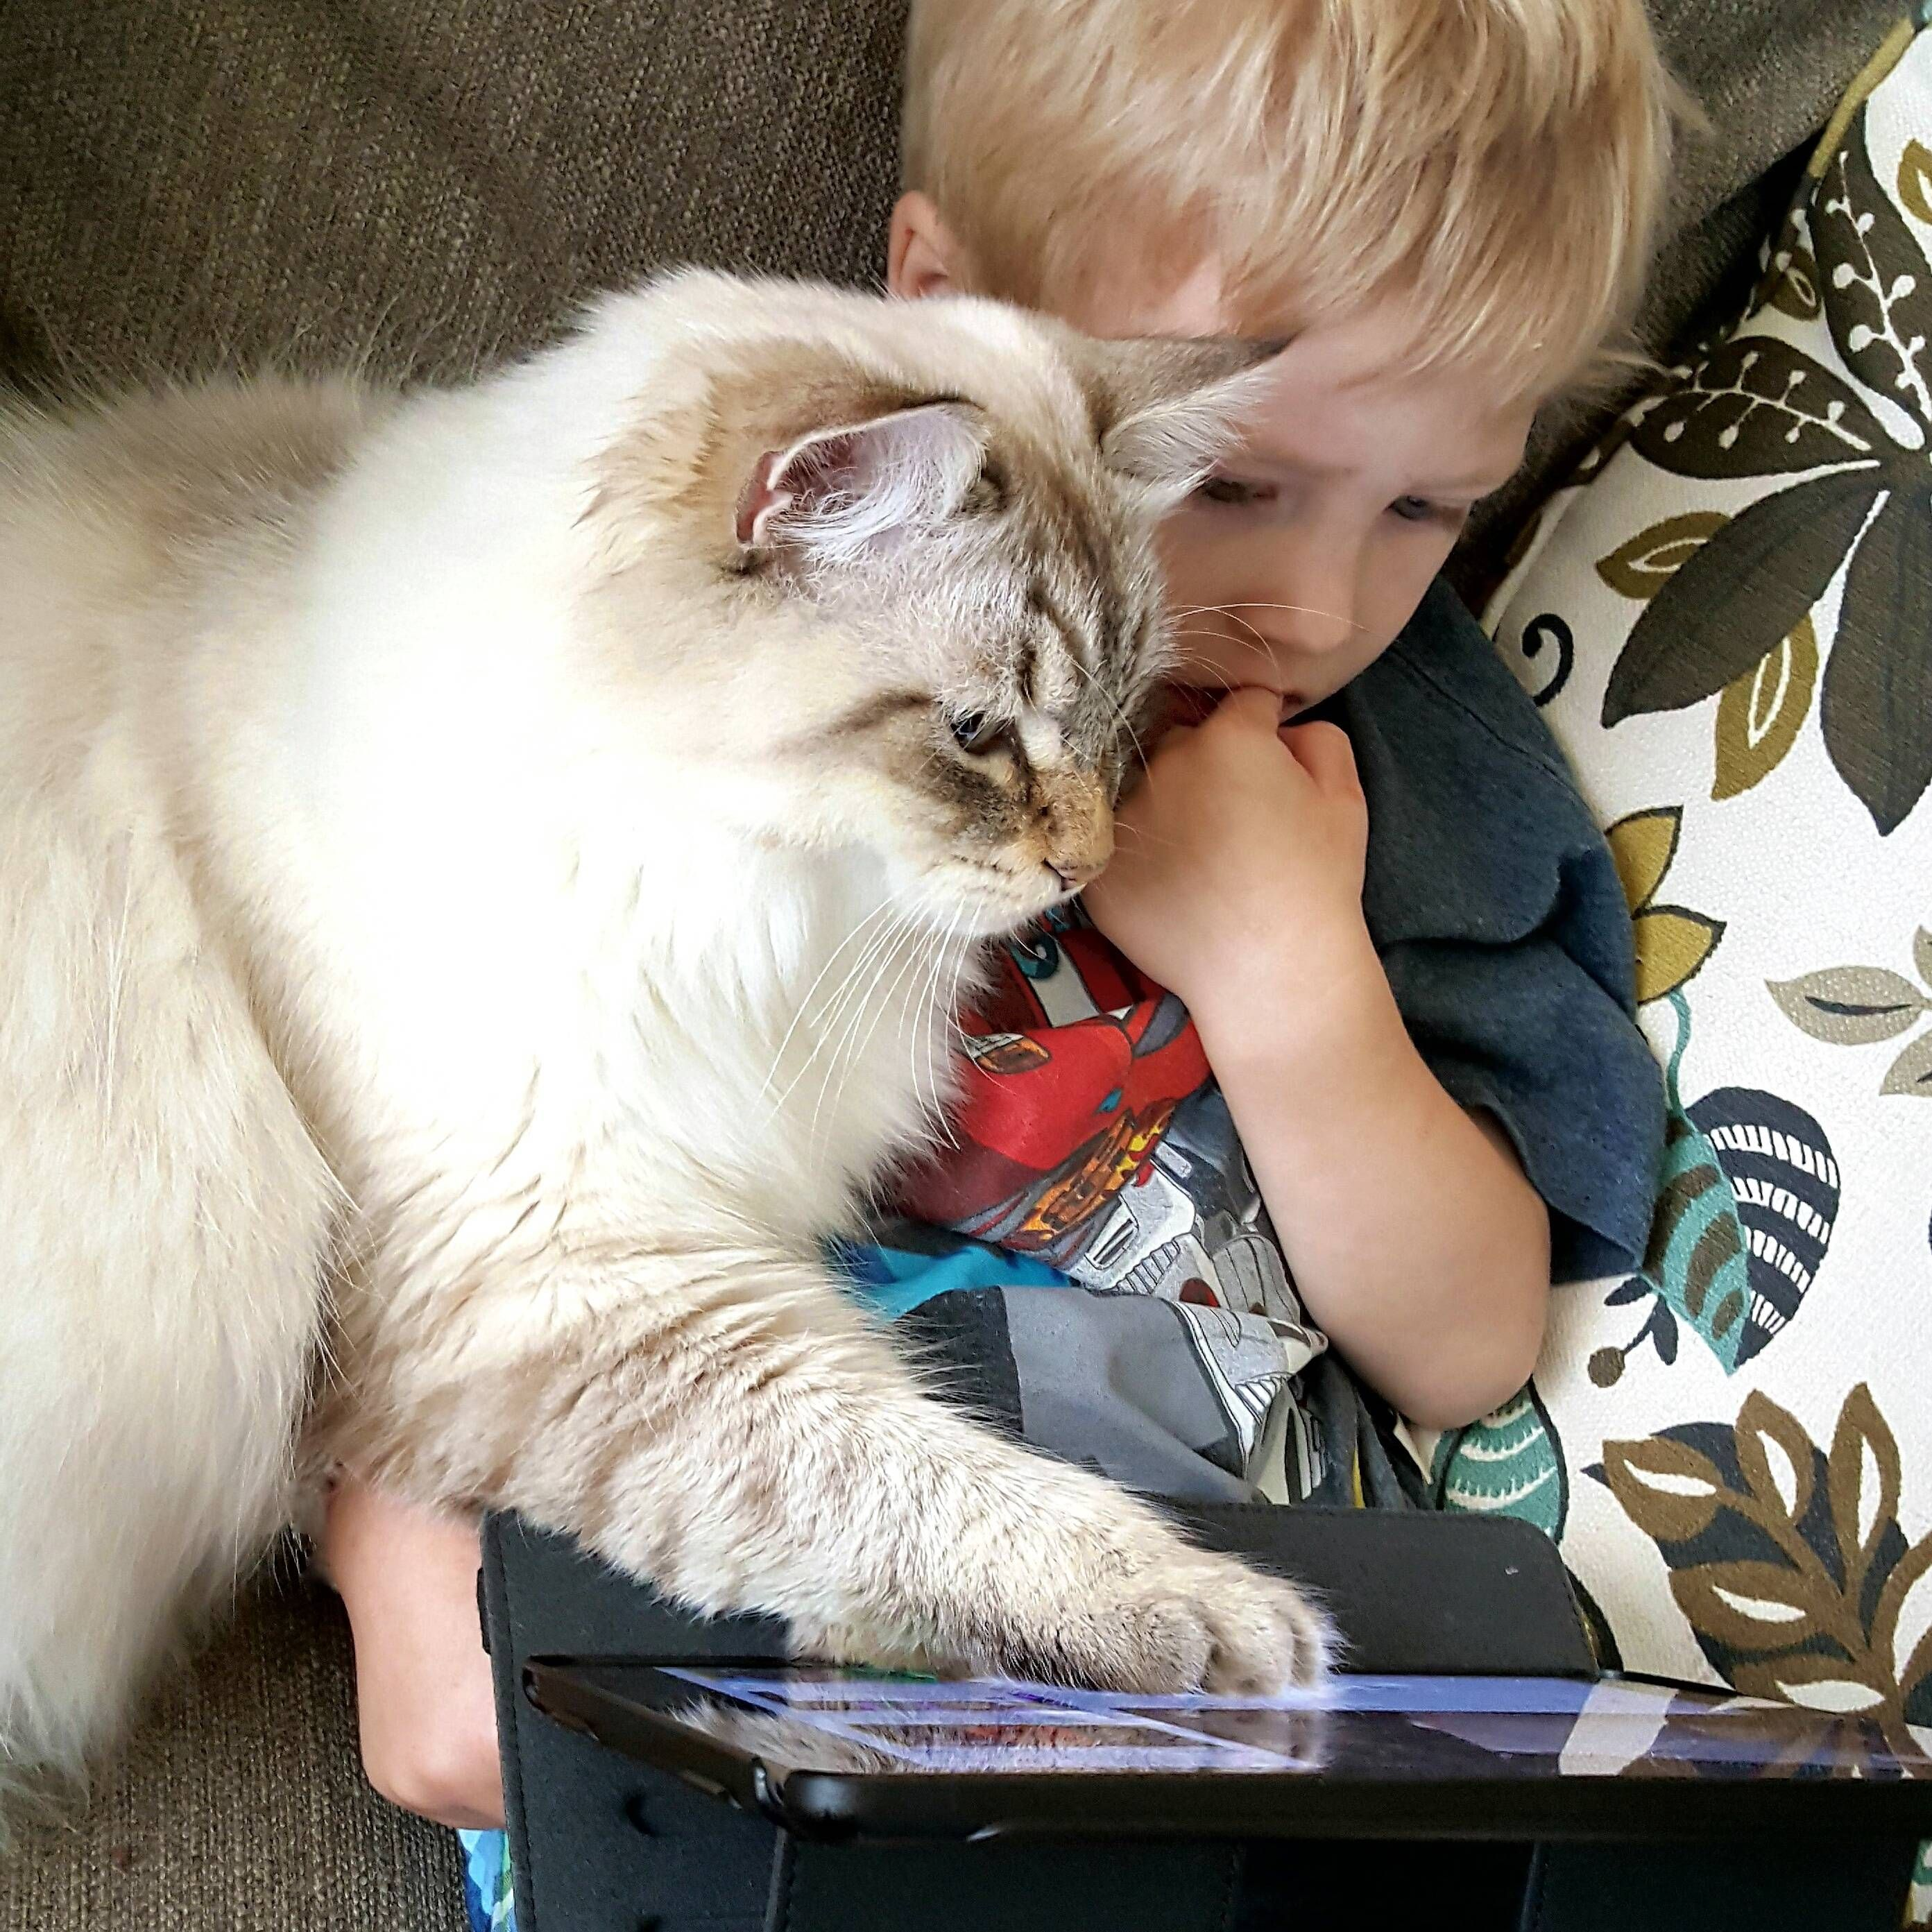 Watch little human. This is how you find cat pics on Reddit.